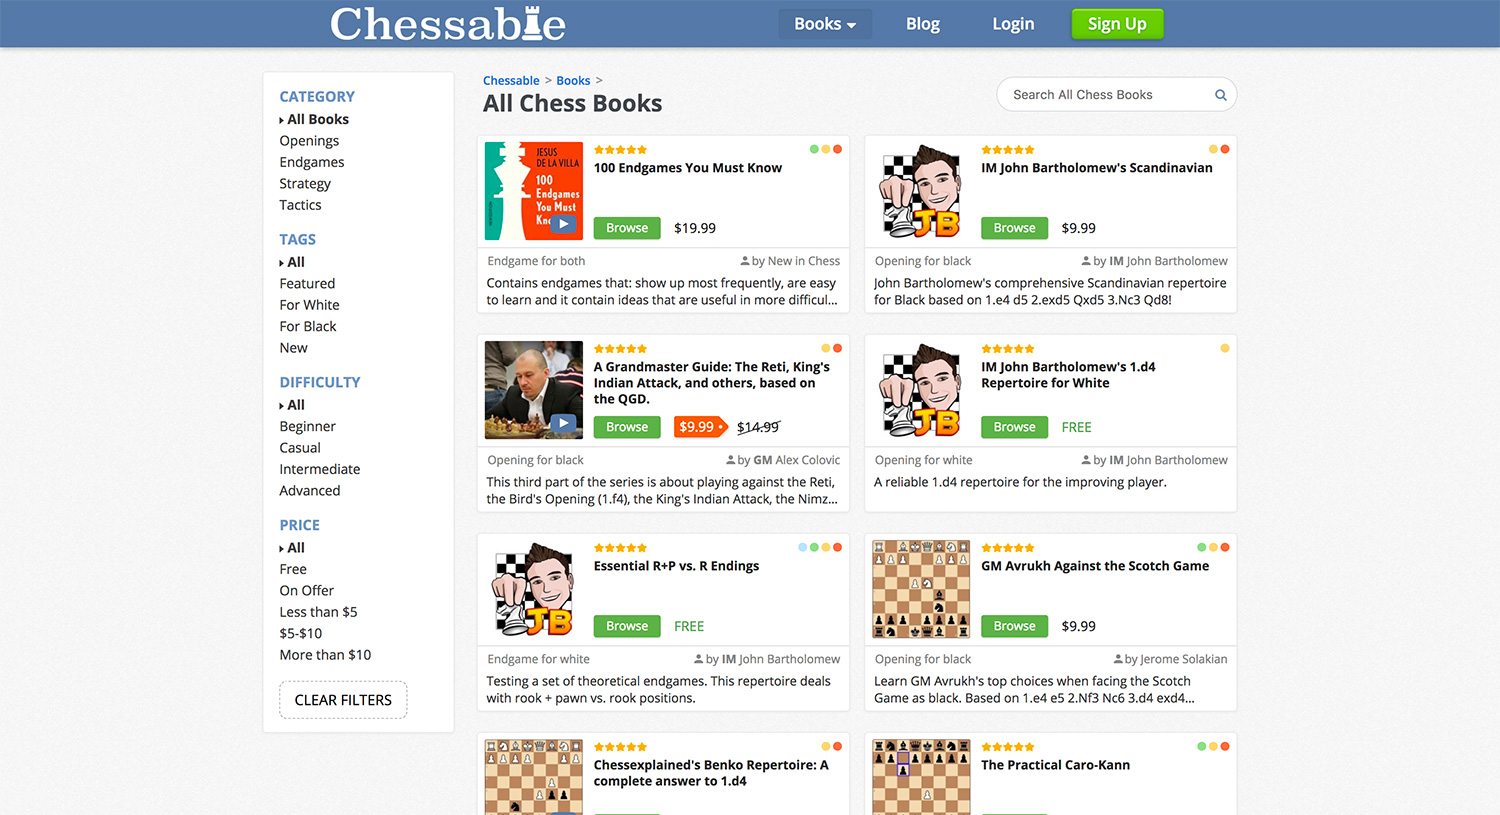 Chessable books